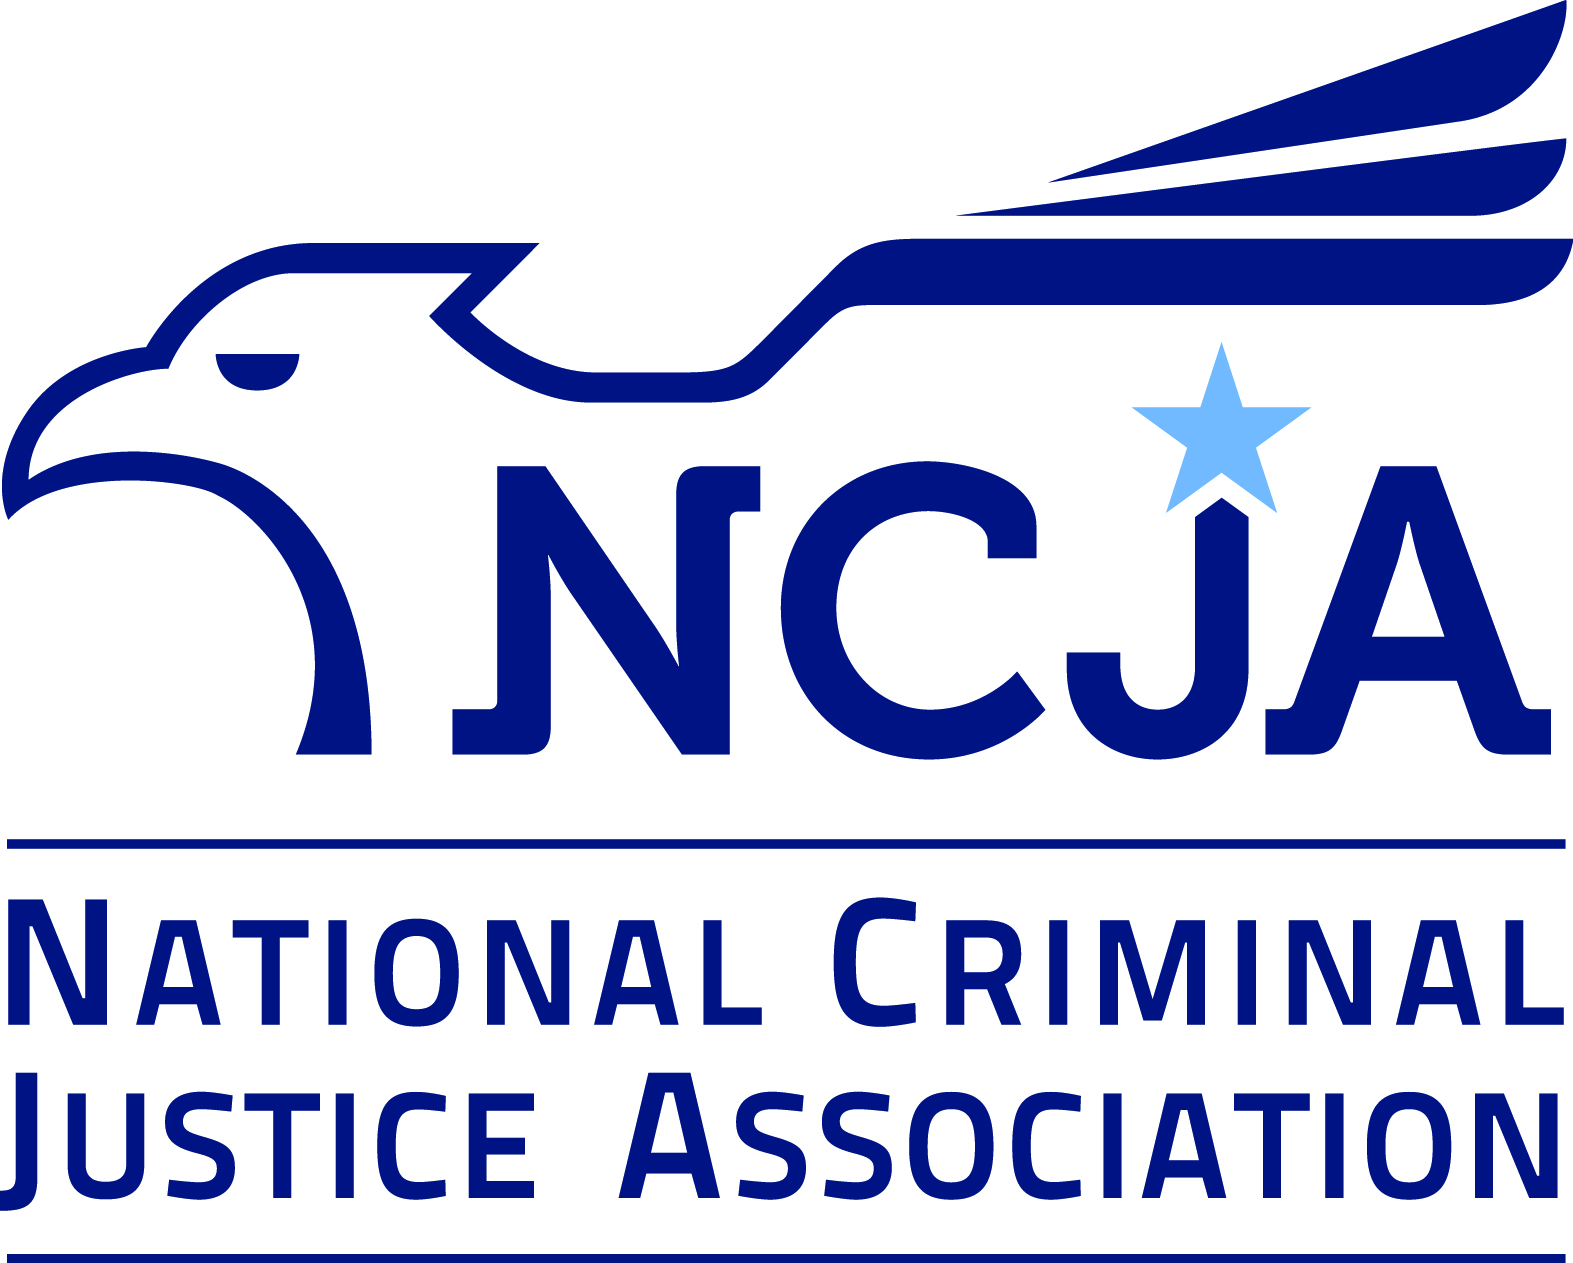 National Criminal Justice Association logo